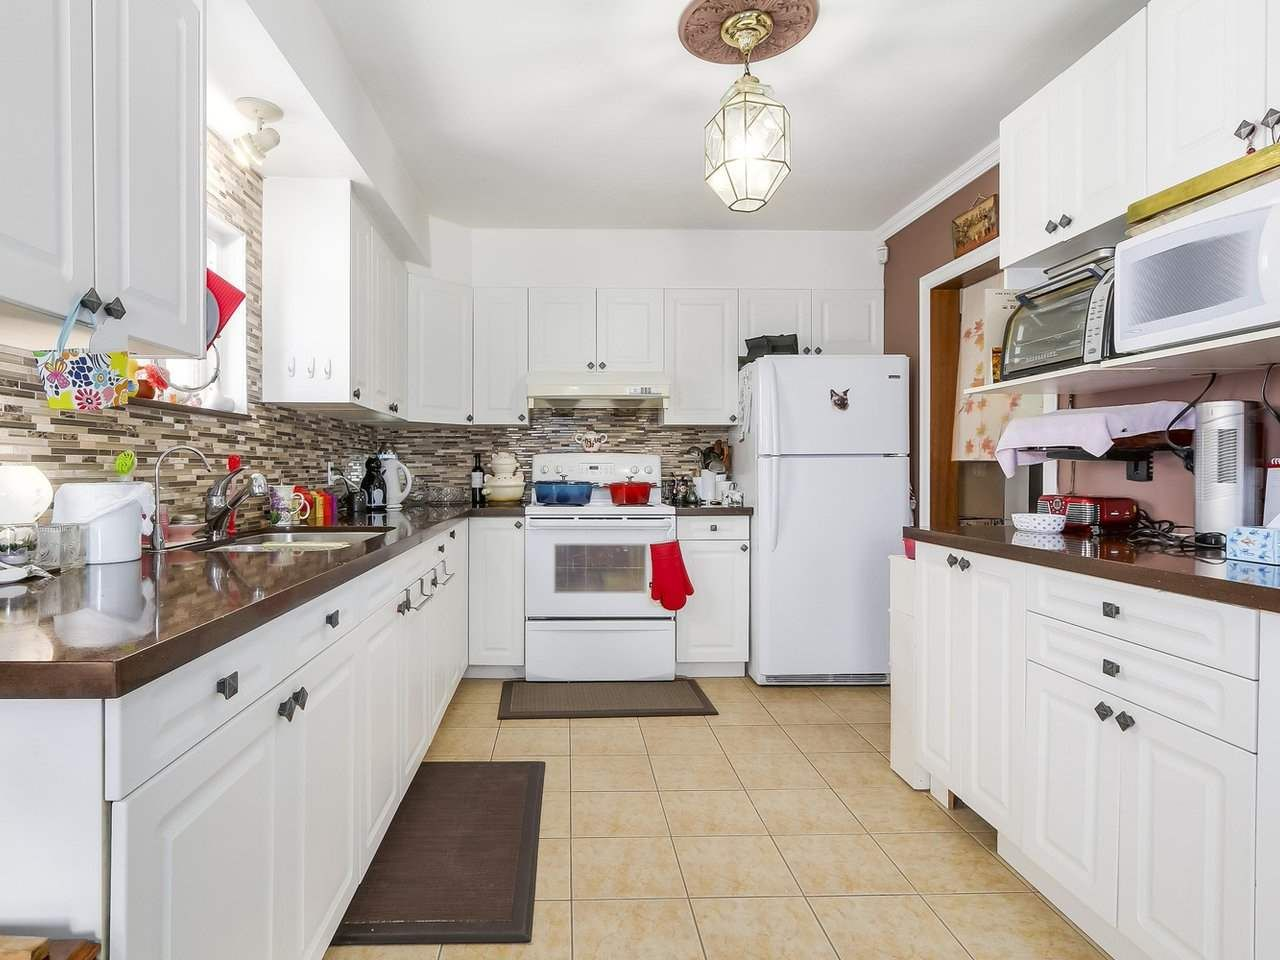 Photo 8: Photos: 165 E 55TH AVENUE in Vancouver: South Vancouver House for sale (Vancouver East)  : MLS®# R2297472